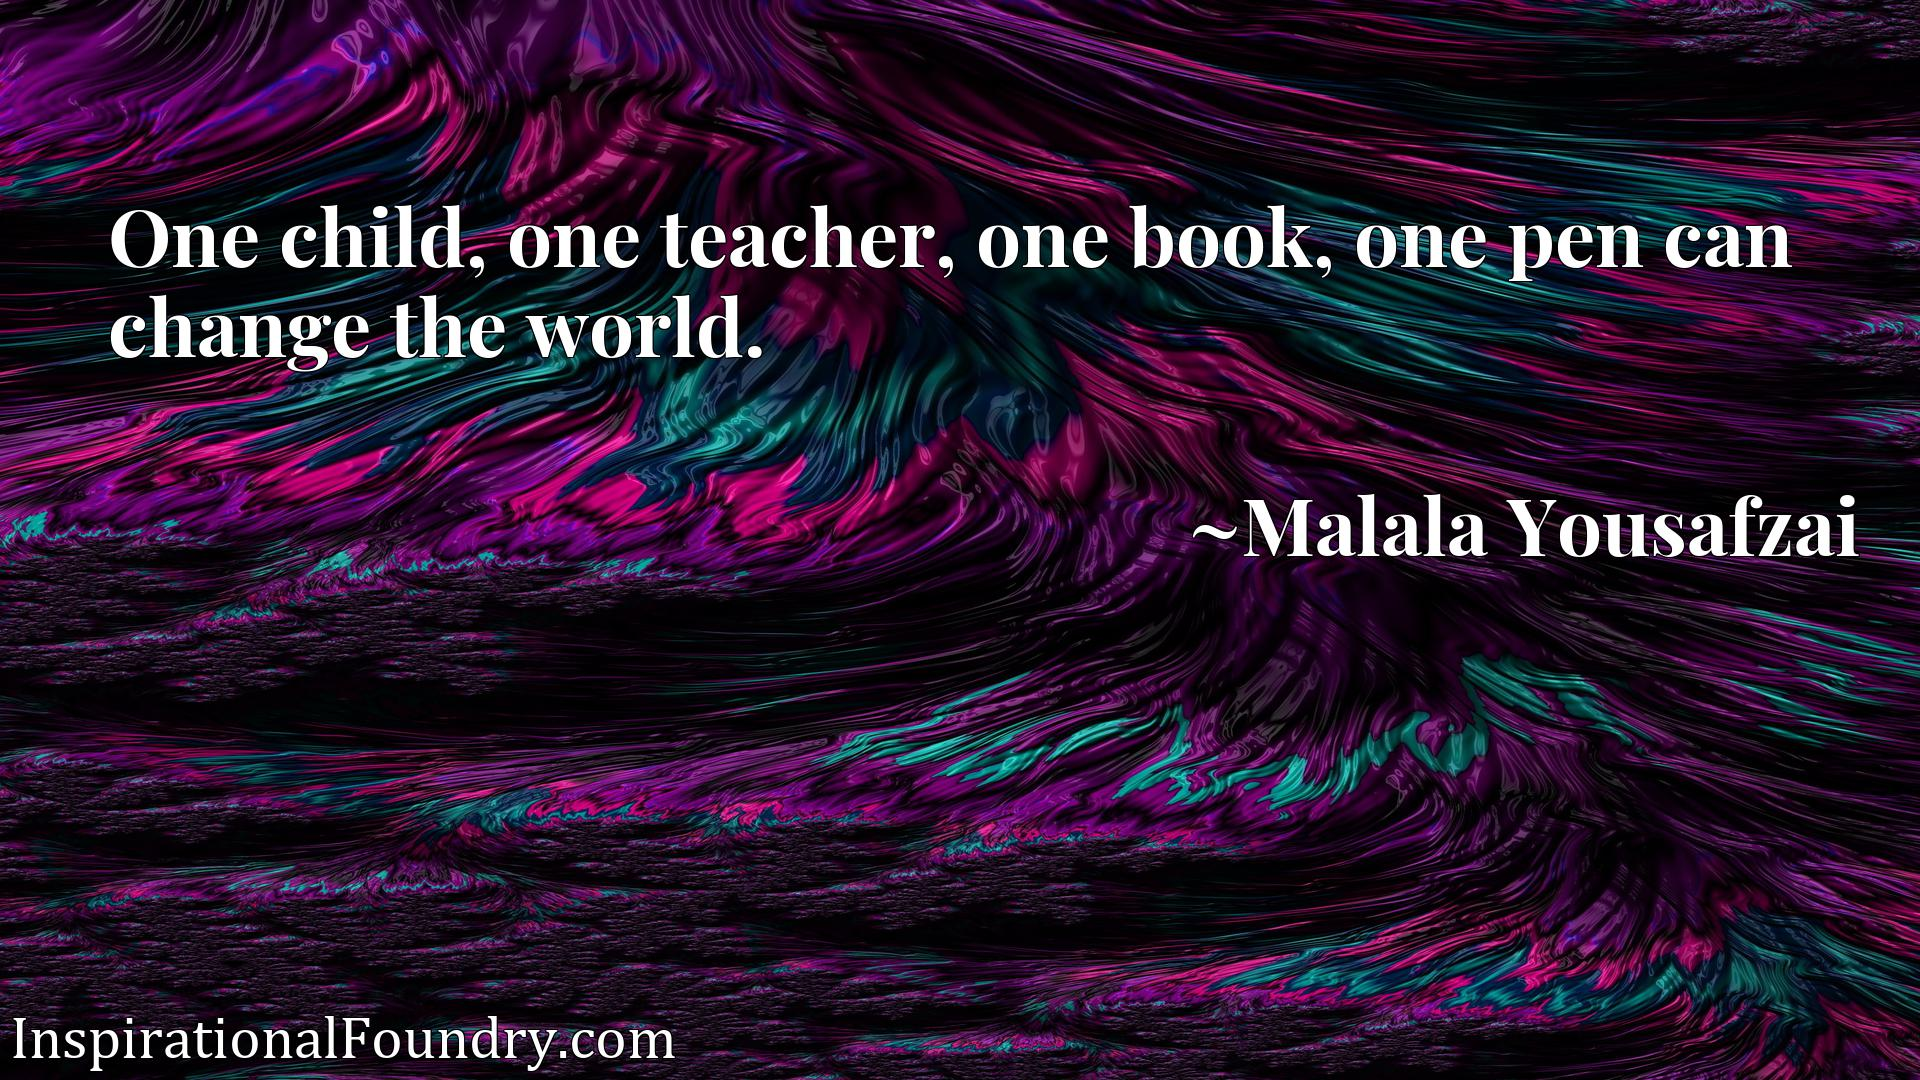 One child, one teacher, one book, one pen can change the world.